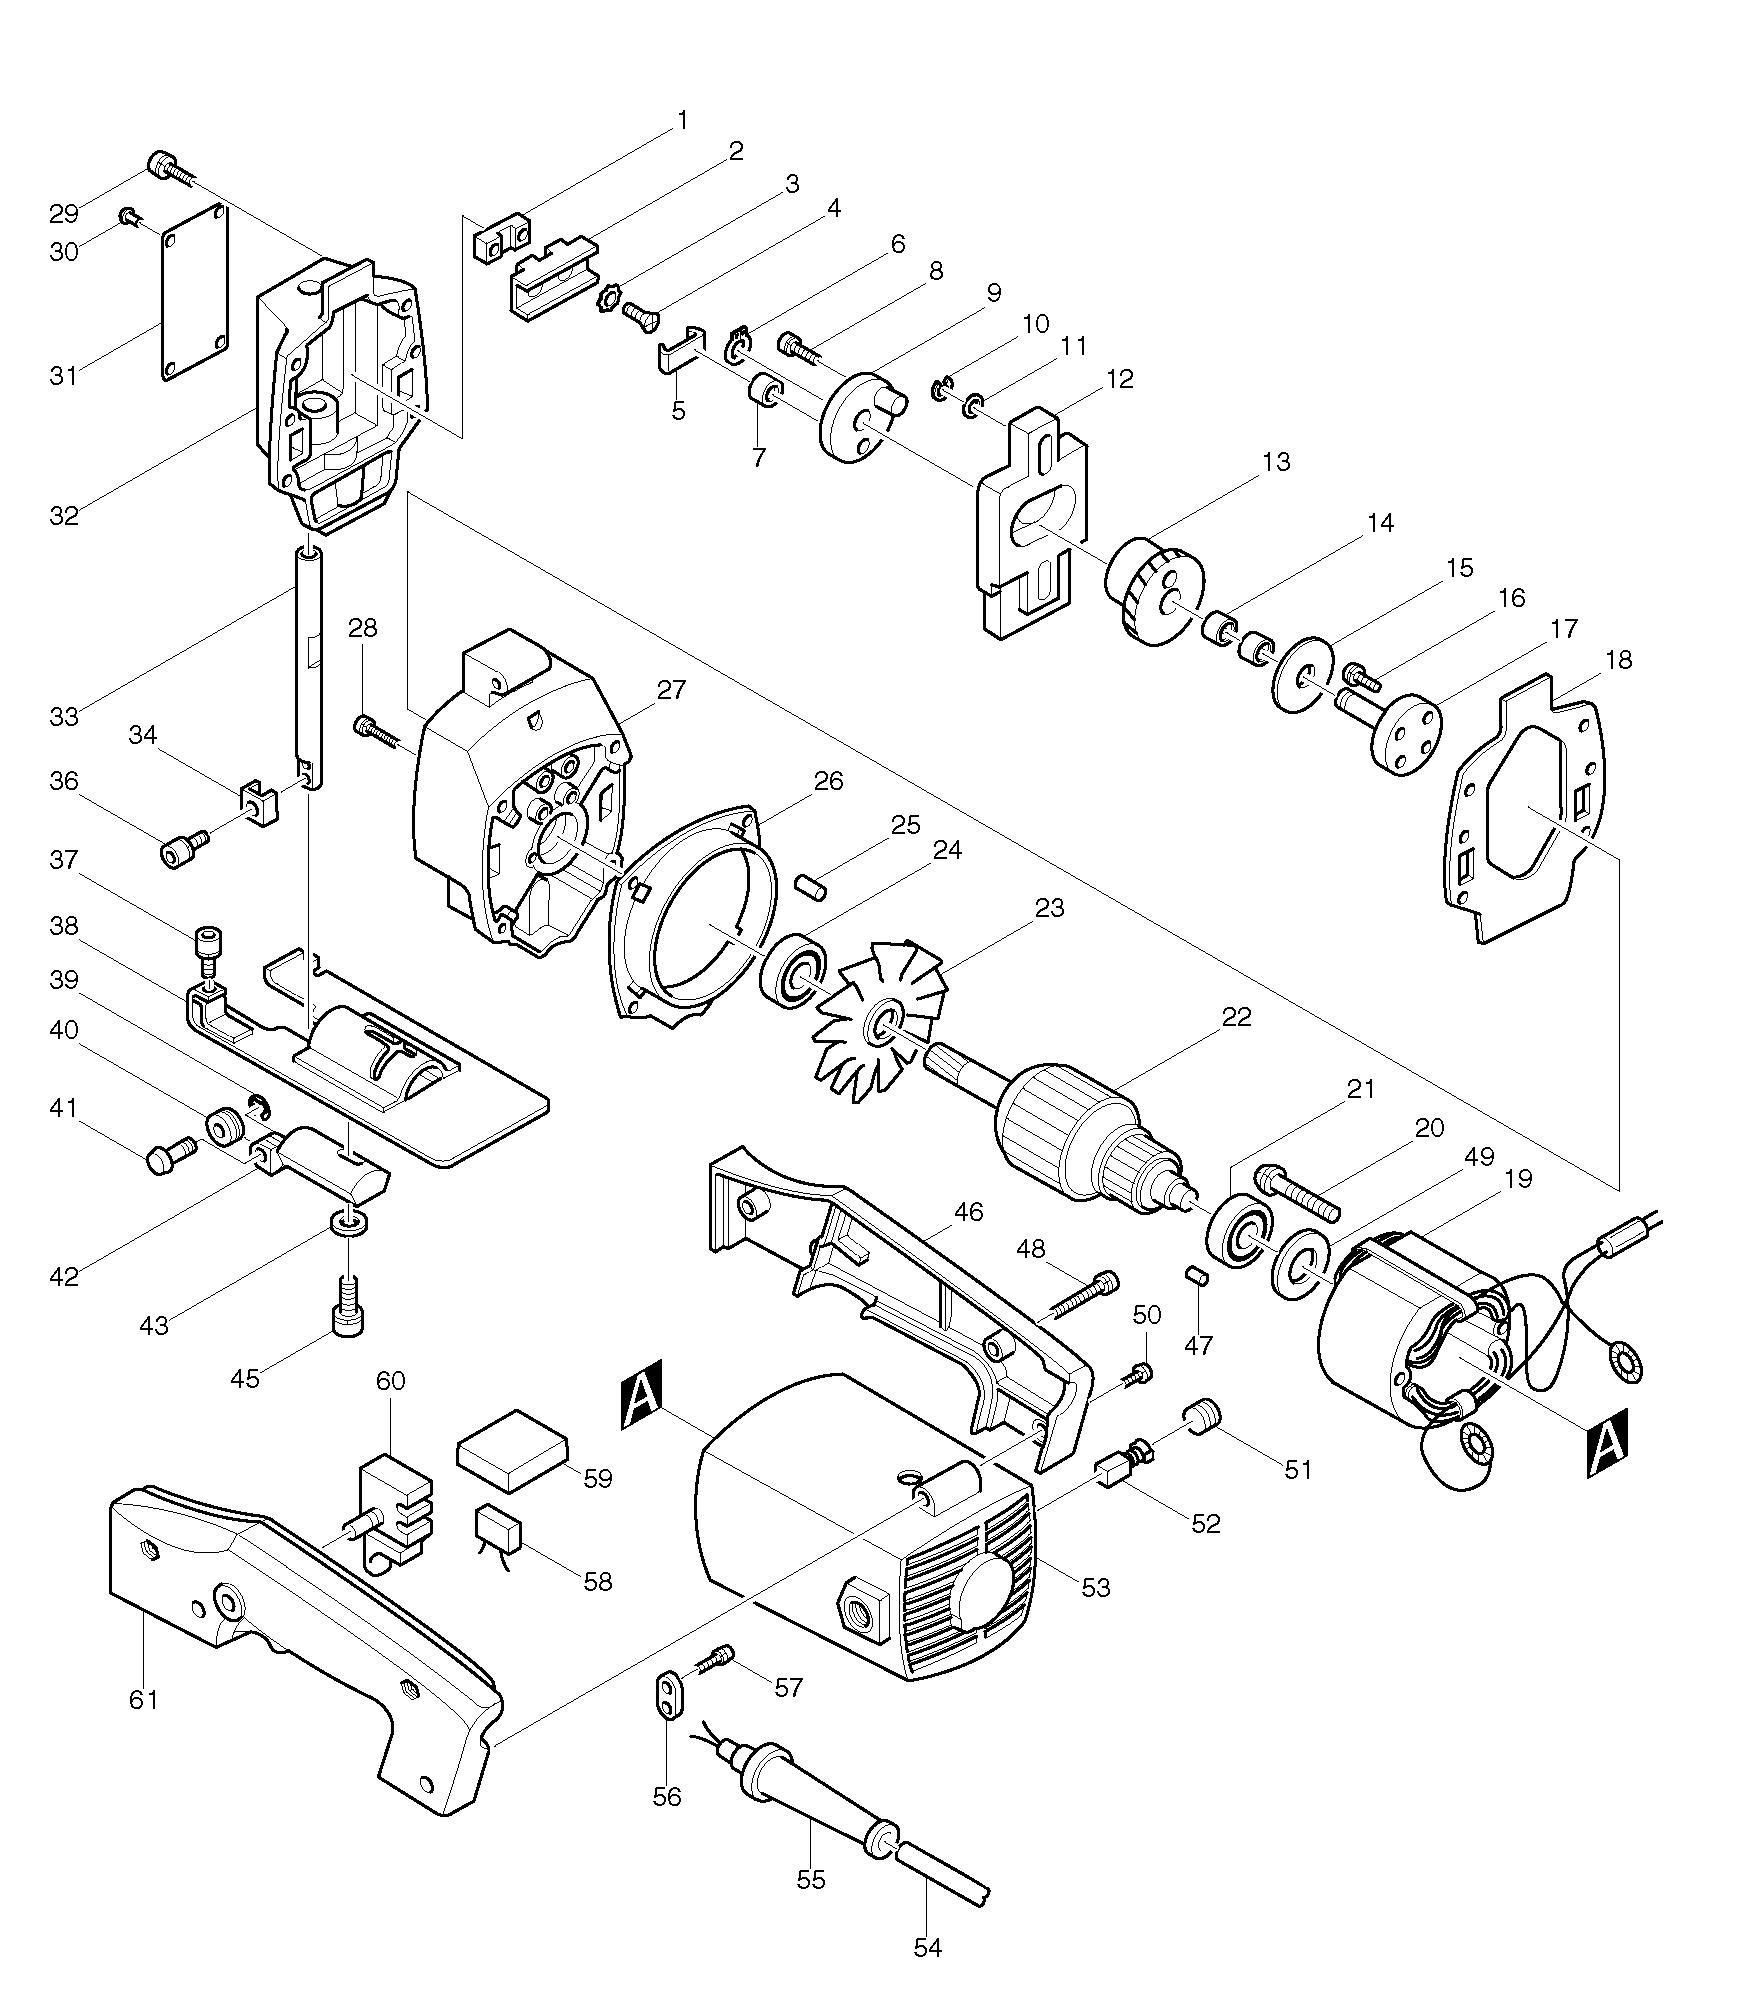 Bosch Jigsaw Parts Diagram